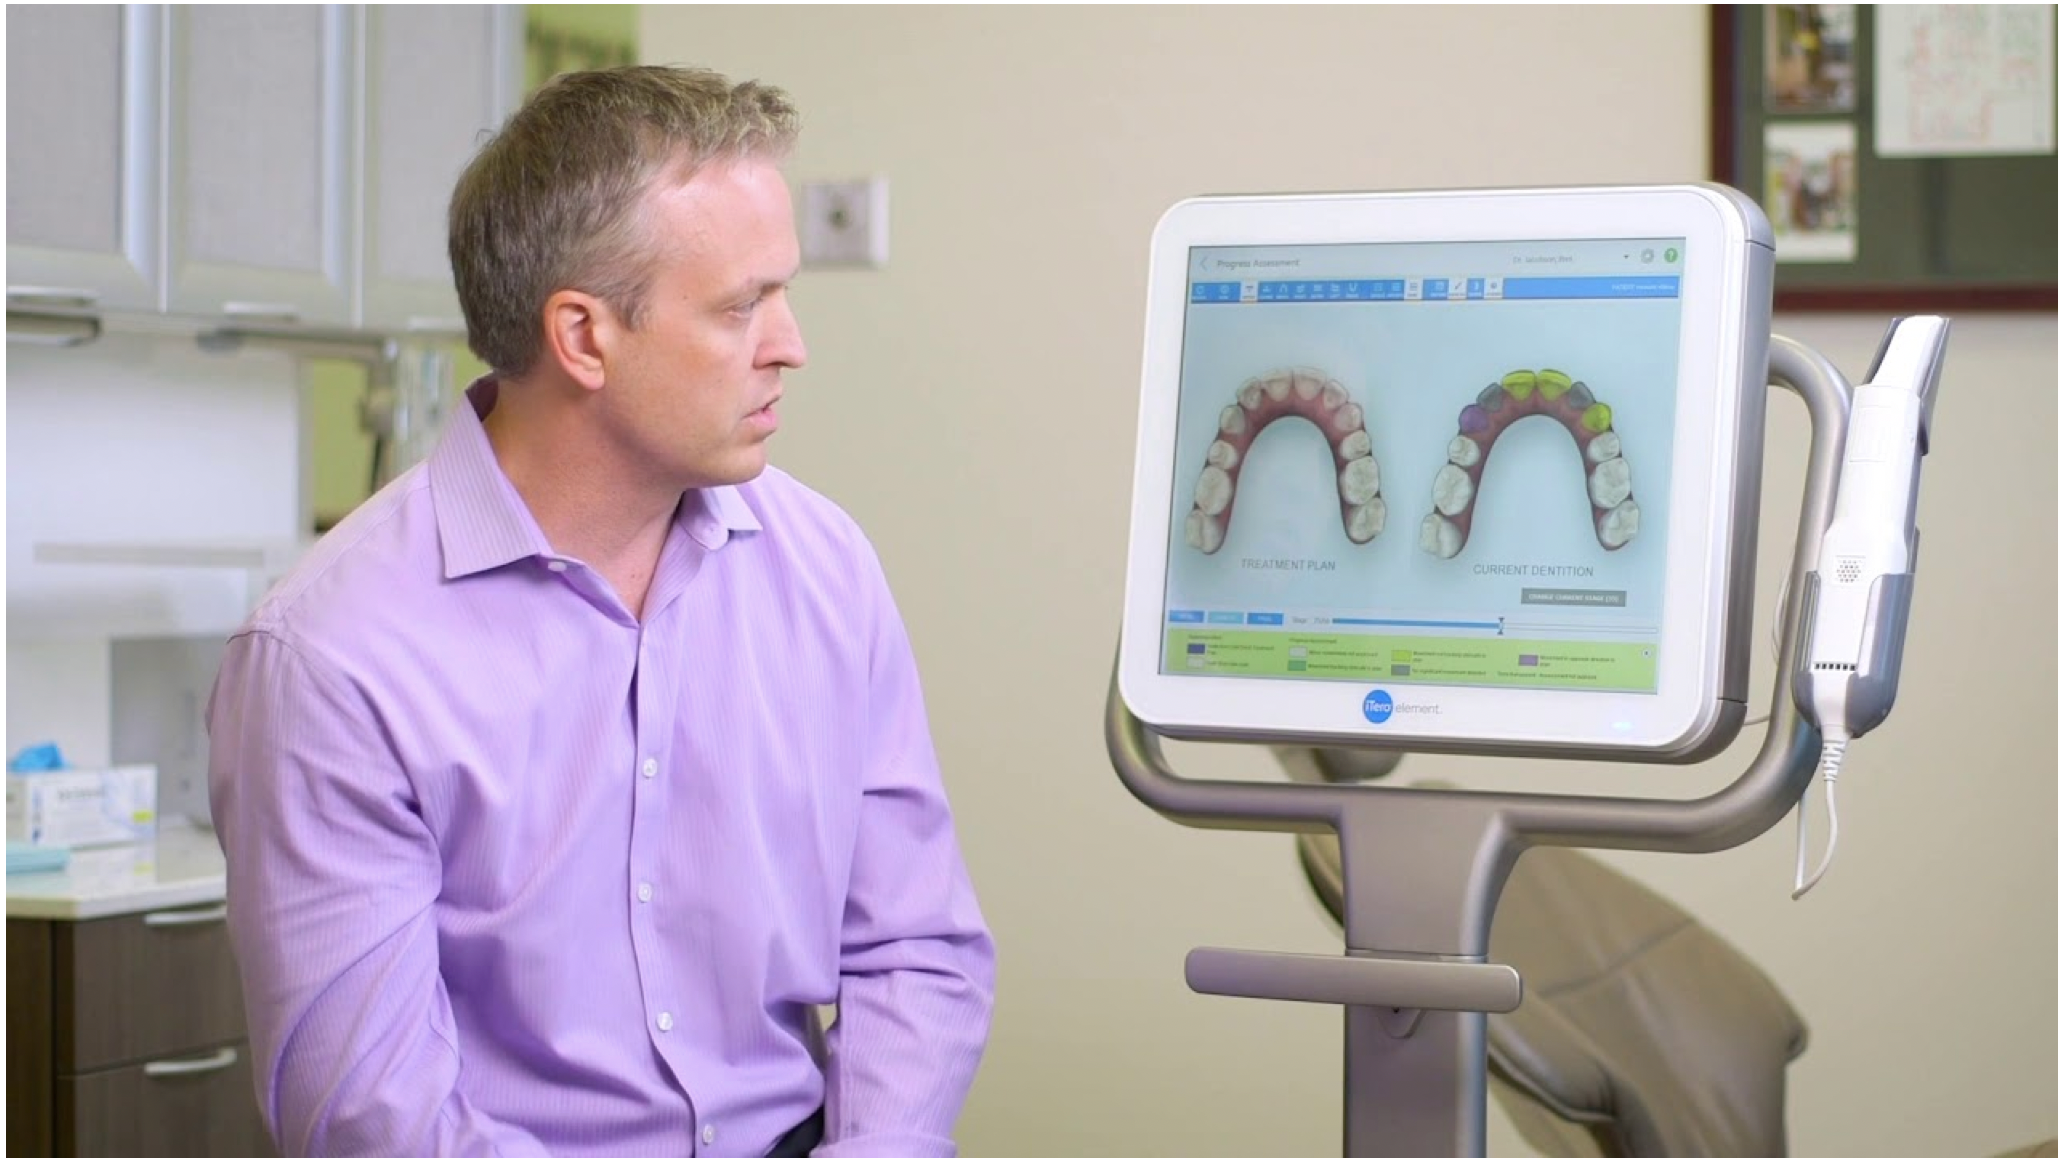 Using Progress Assessment with Invisalign clear aligner patients.